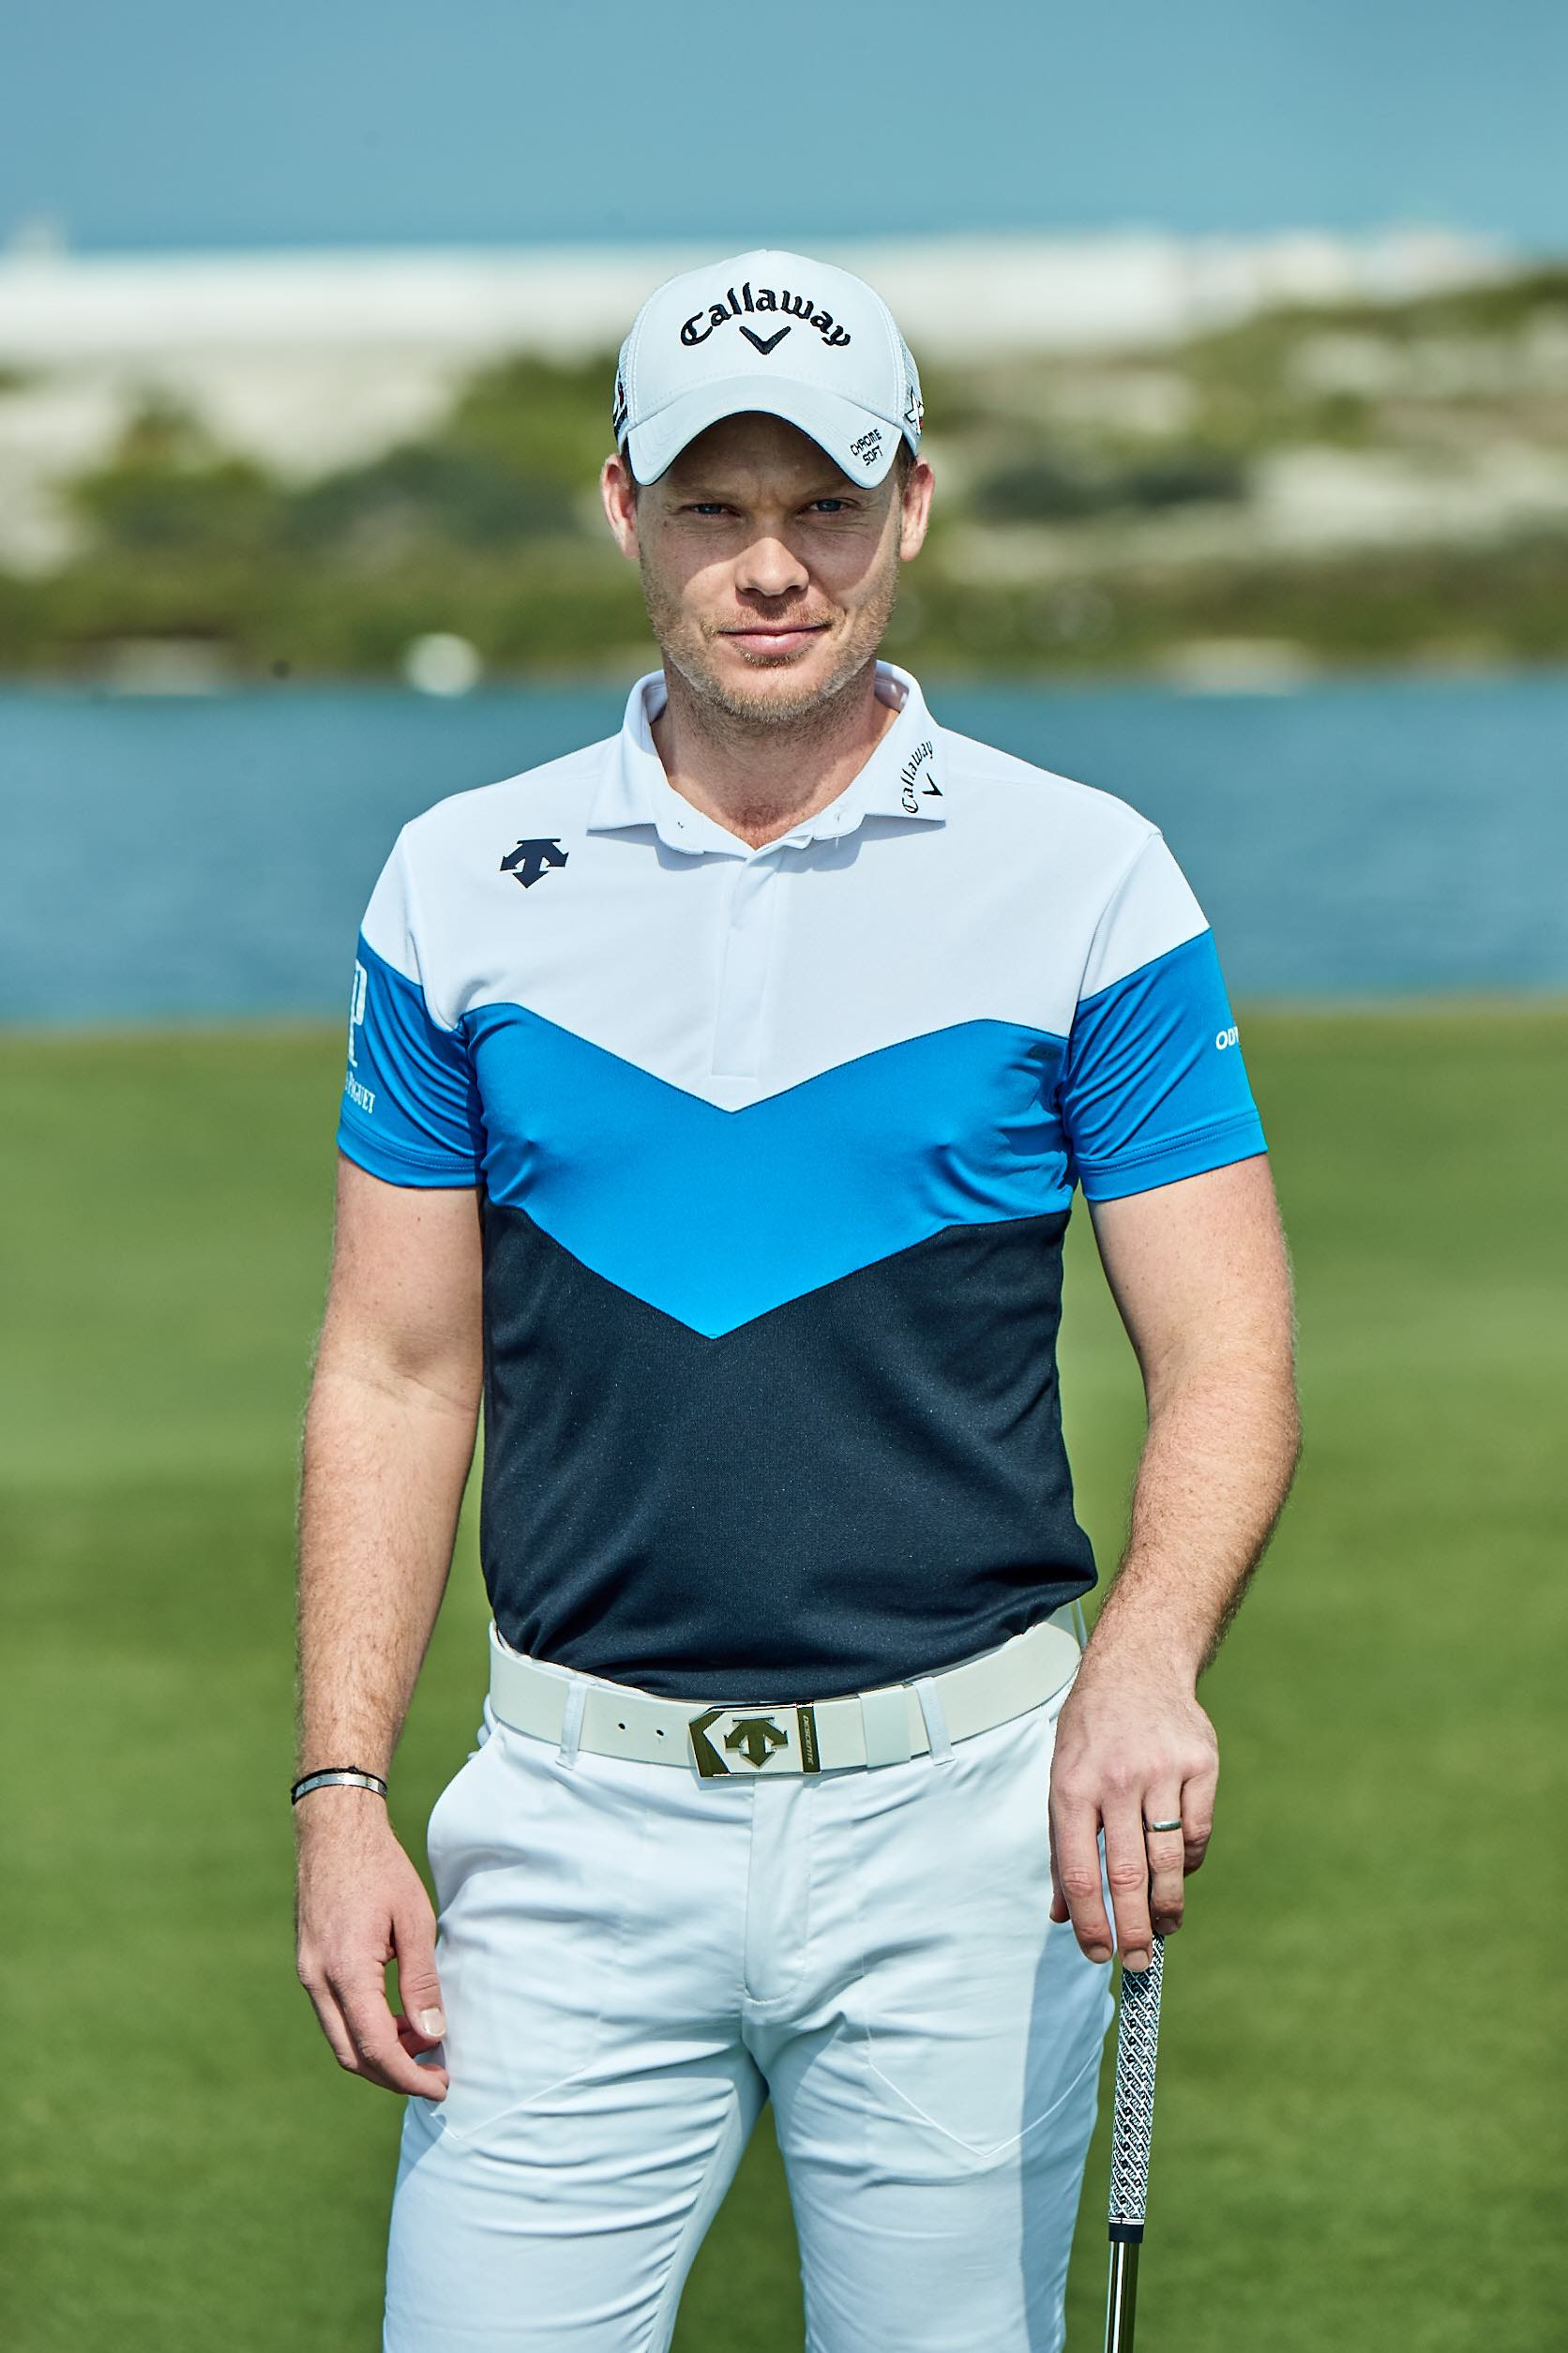 Danny Willett joins DESCENTE